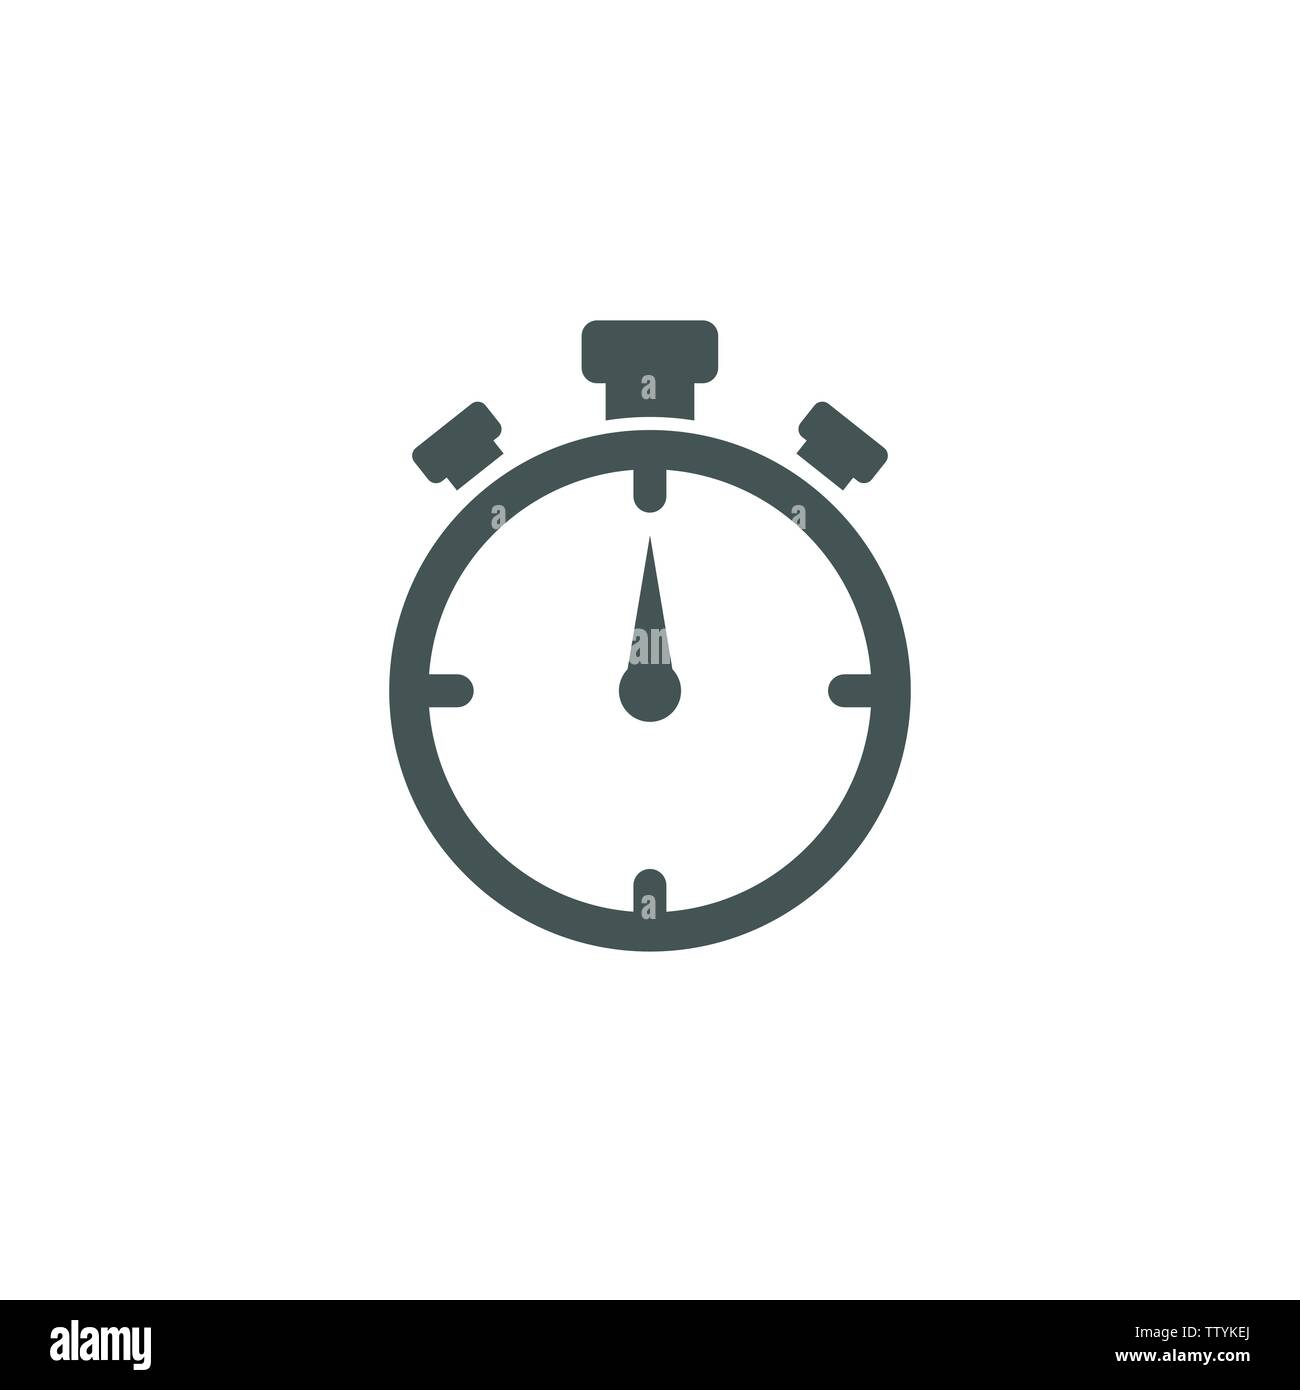 Chronometer Black and White Stock Photos & Images - Alamy